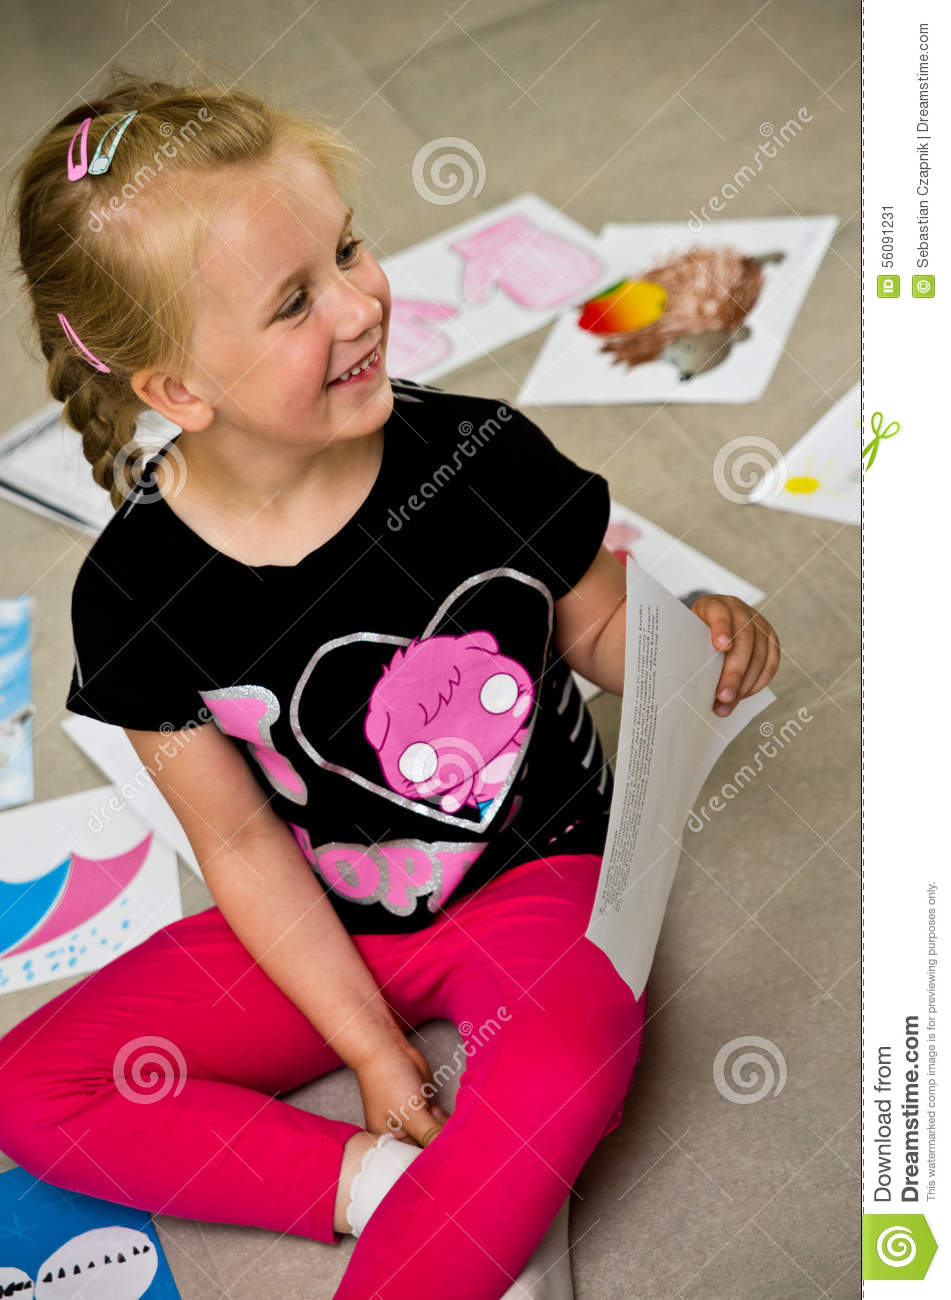 Girl with her drawings on the floor